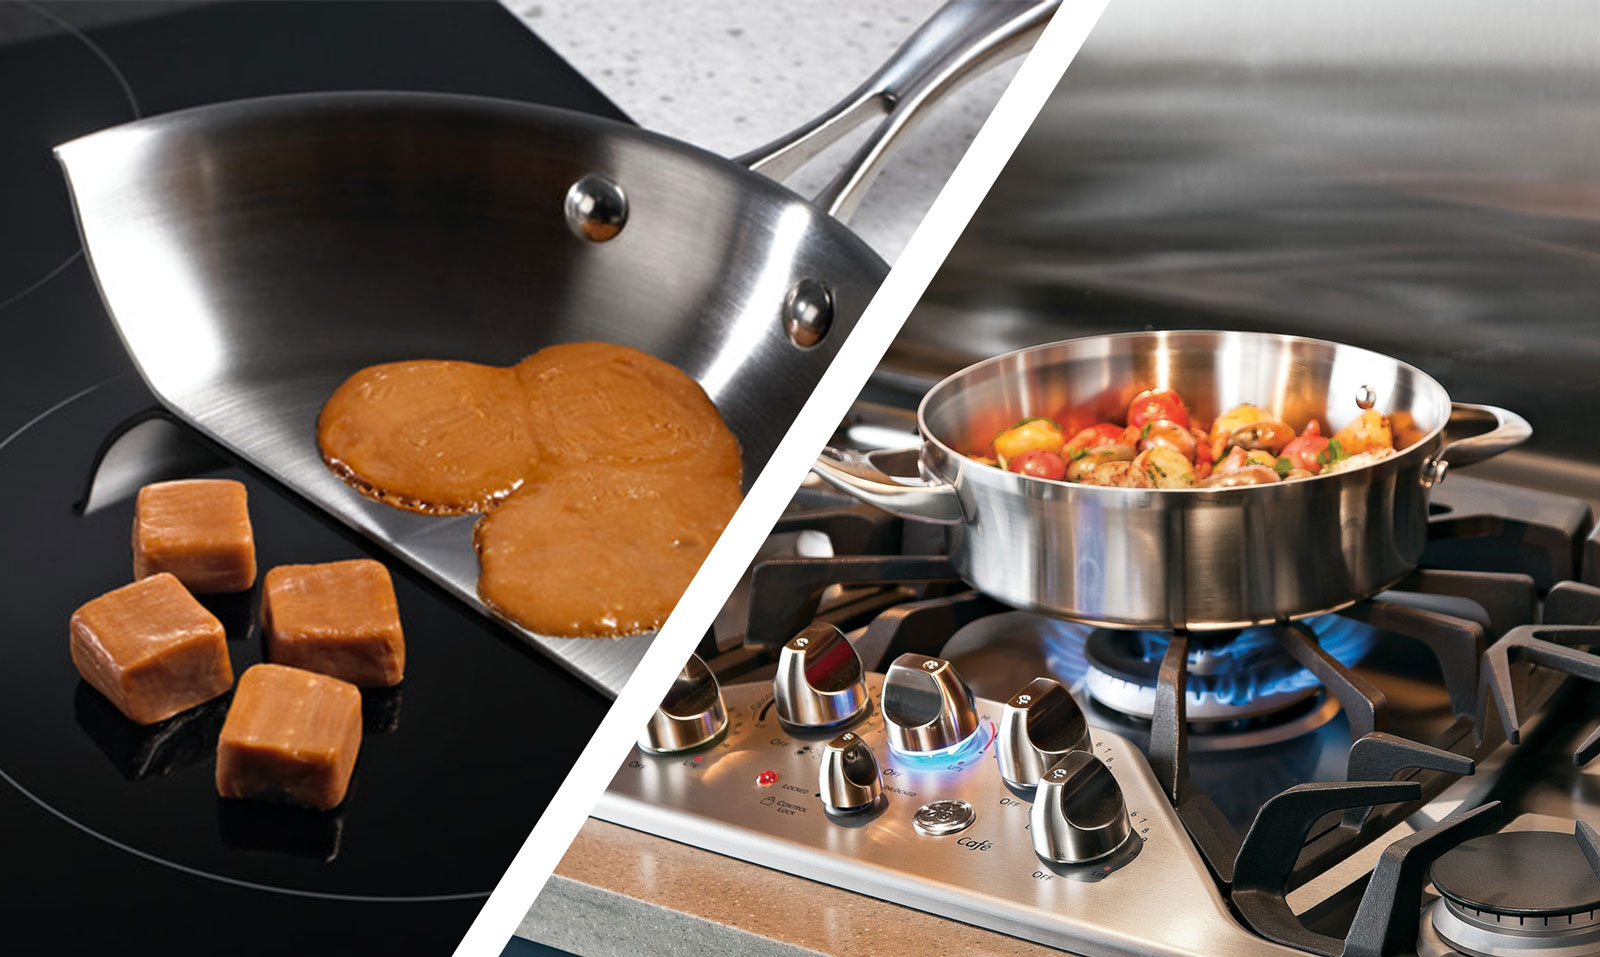 Induction Stove tops vs